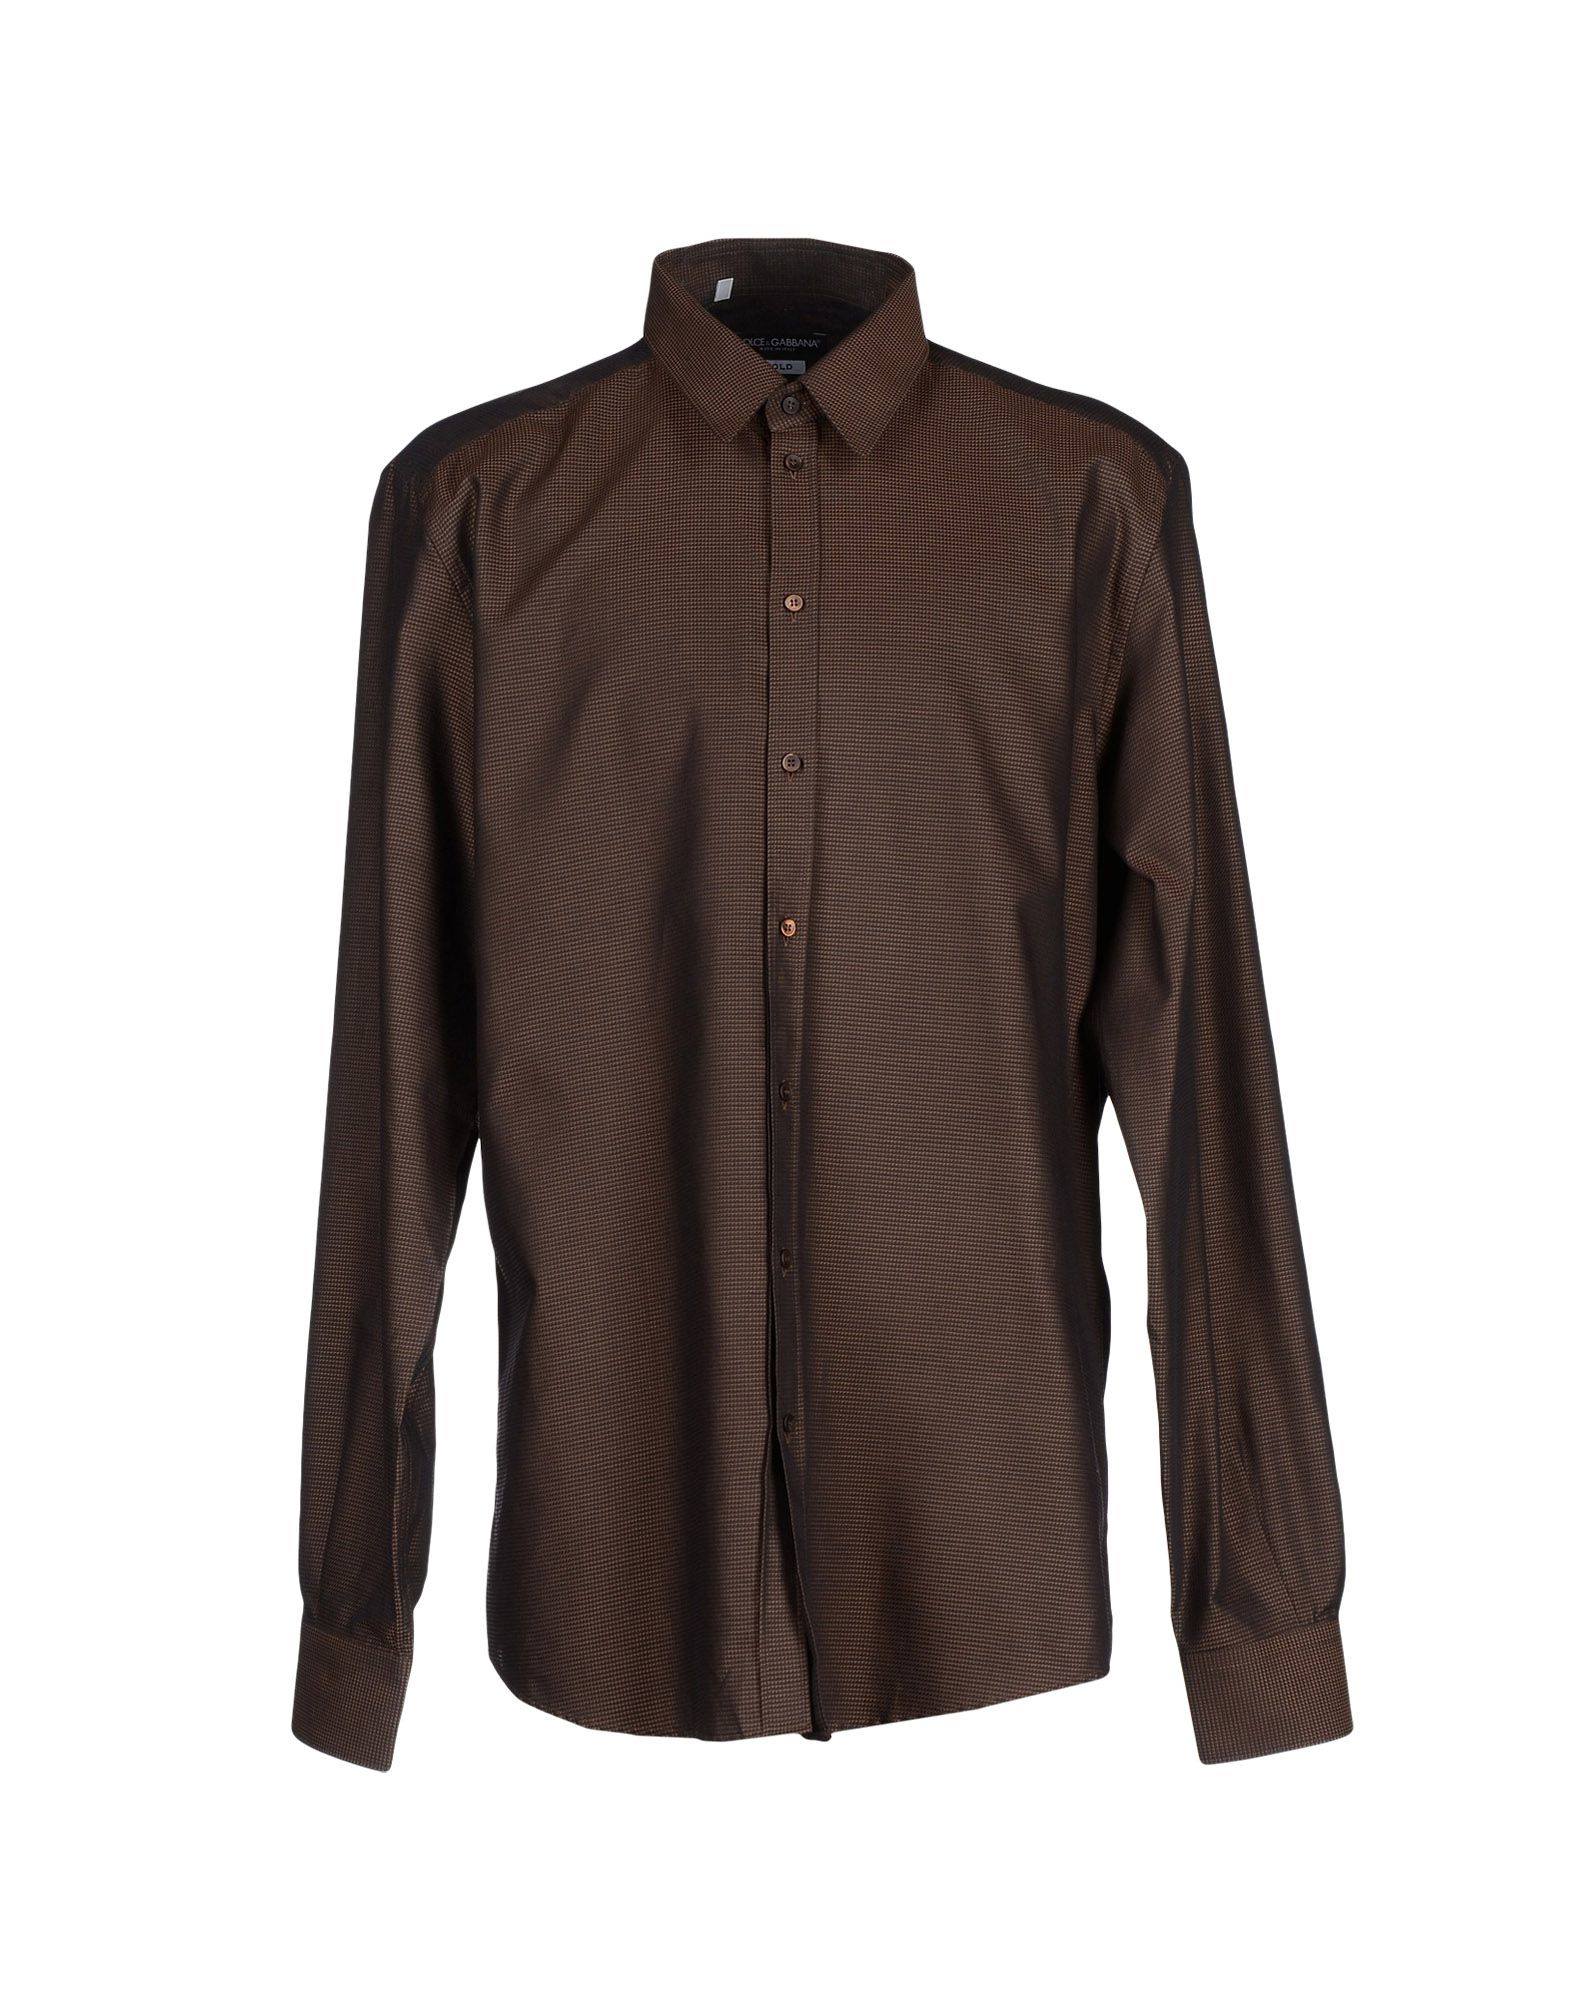 Dolce gabbana shirt in brown for men dark brown lyst for Black brown mens shirts